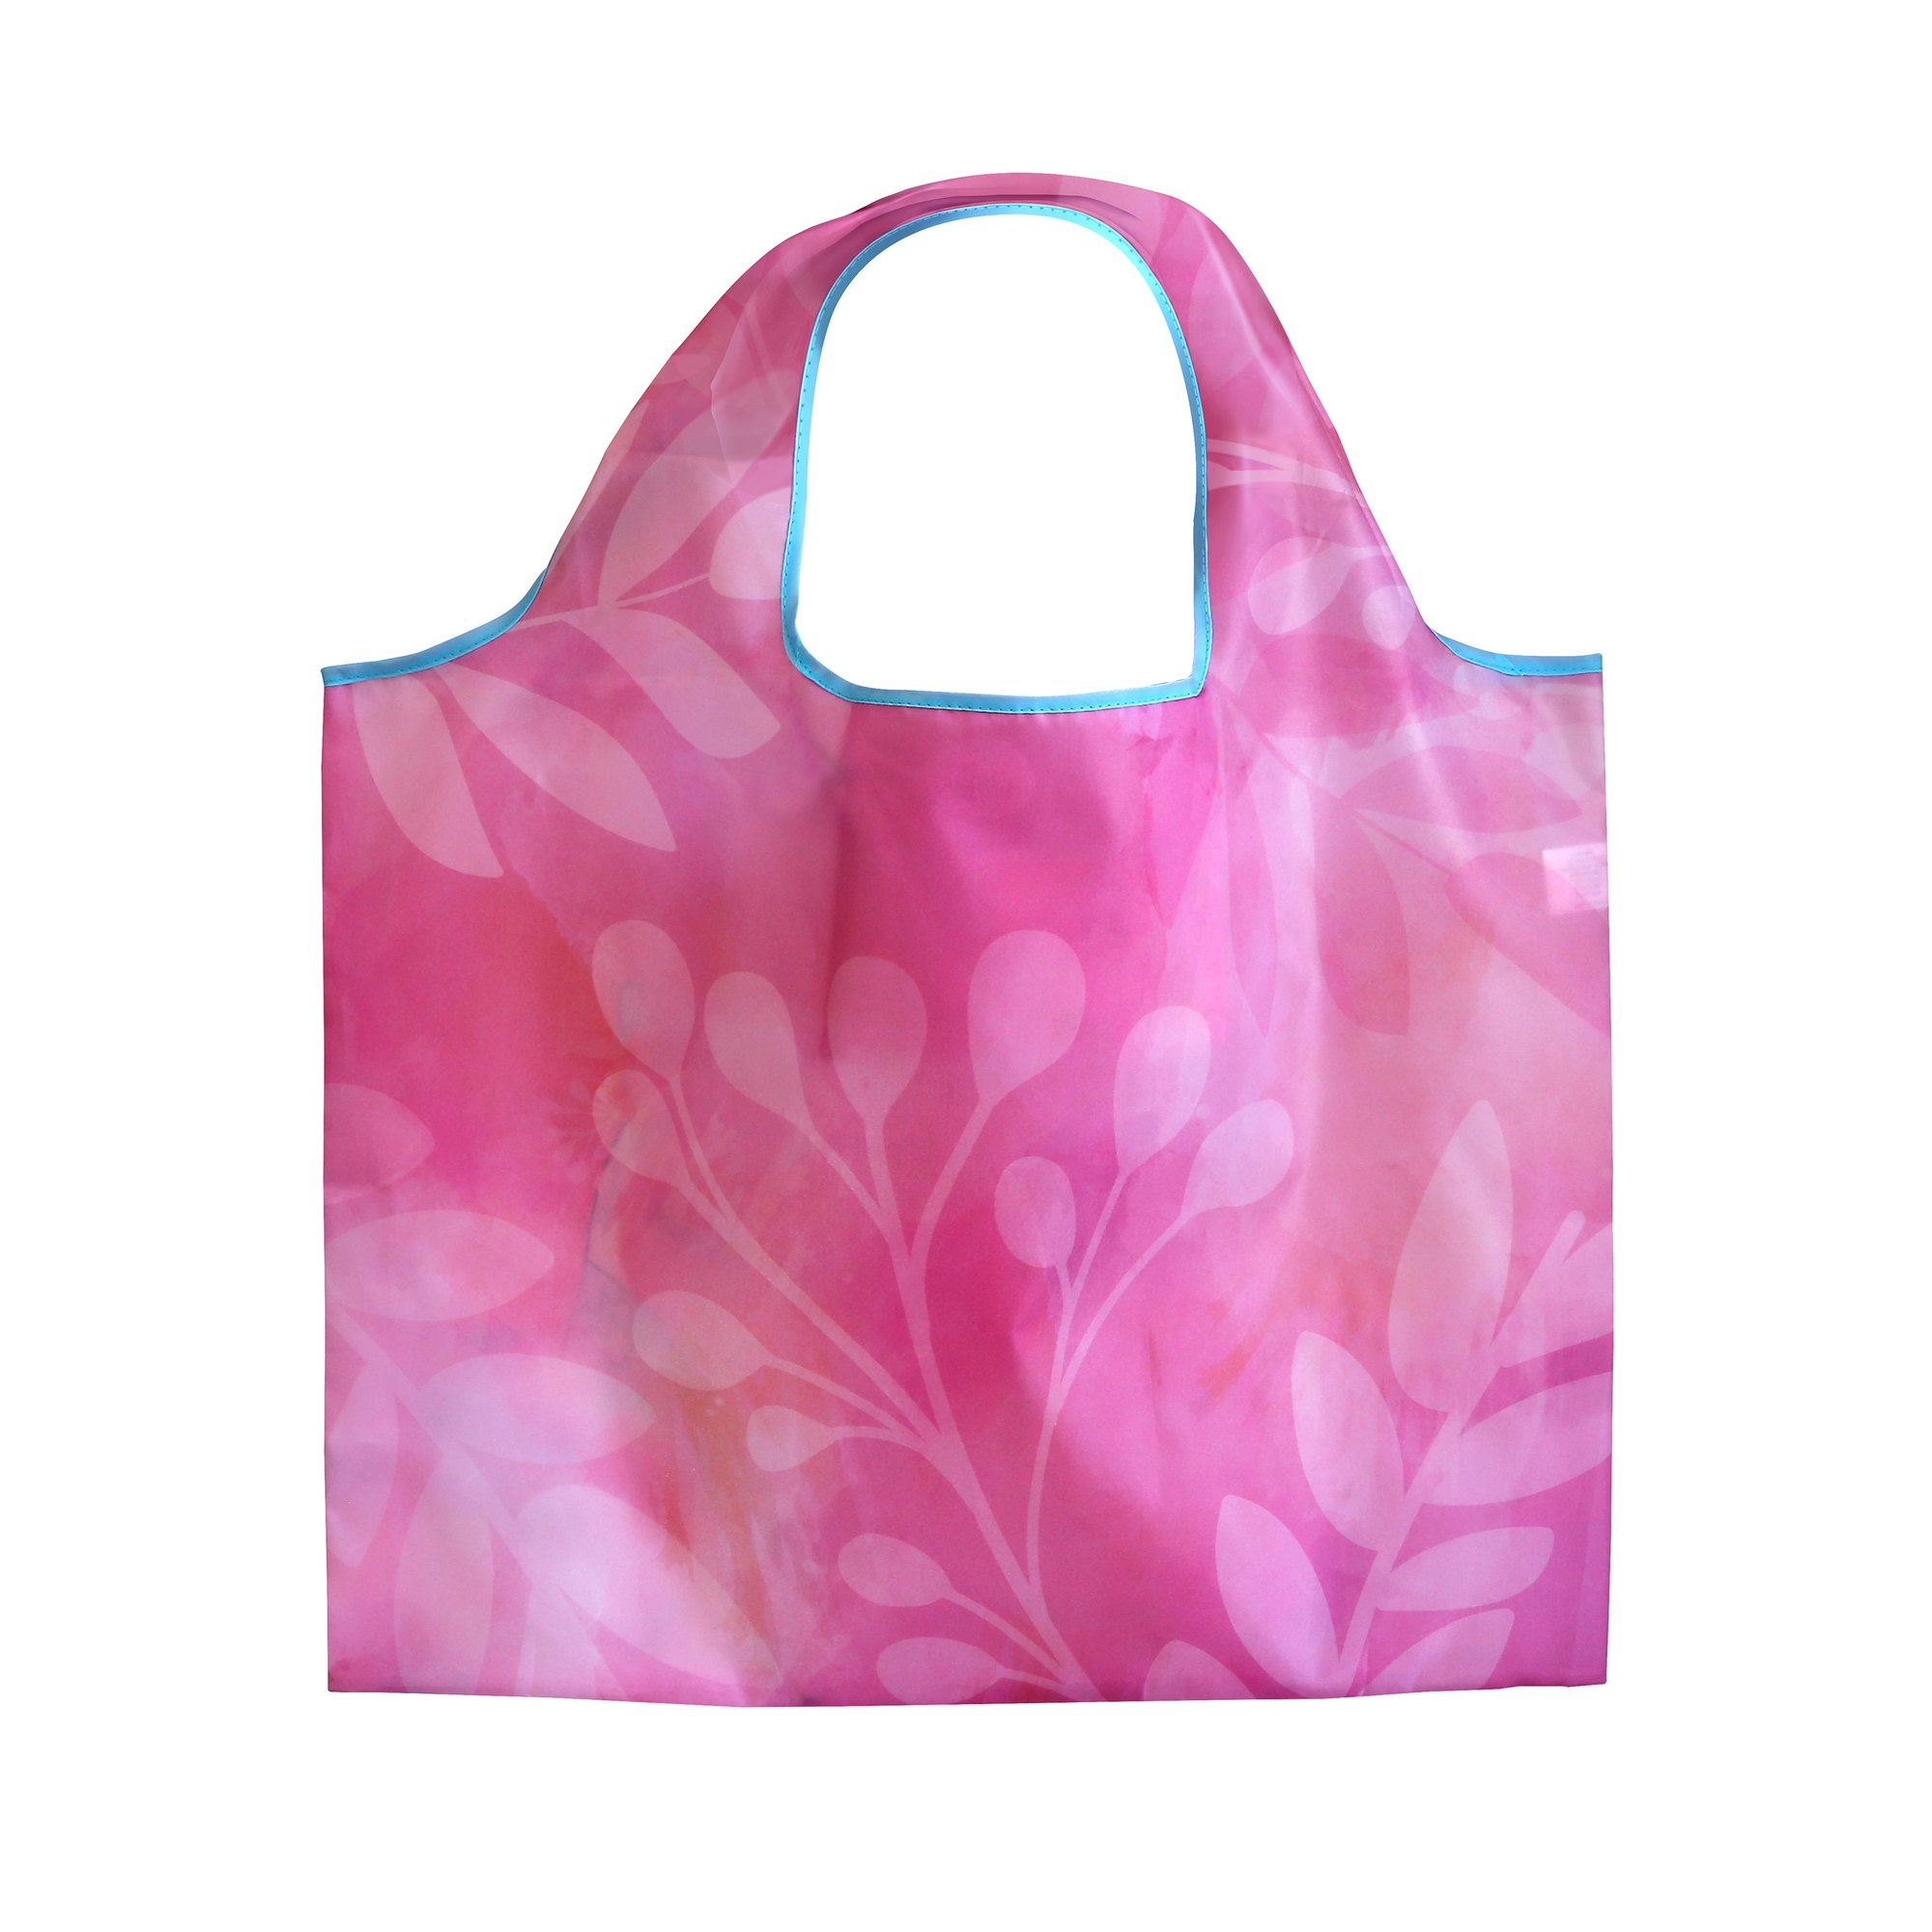 Foldable Eco Bag - Kindness